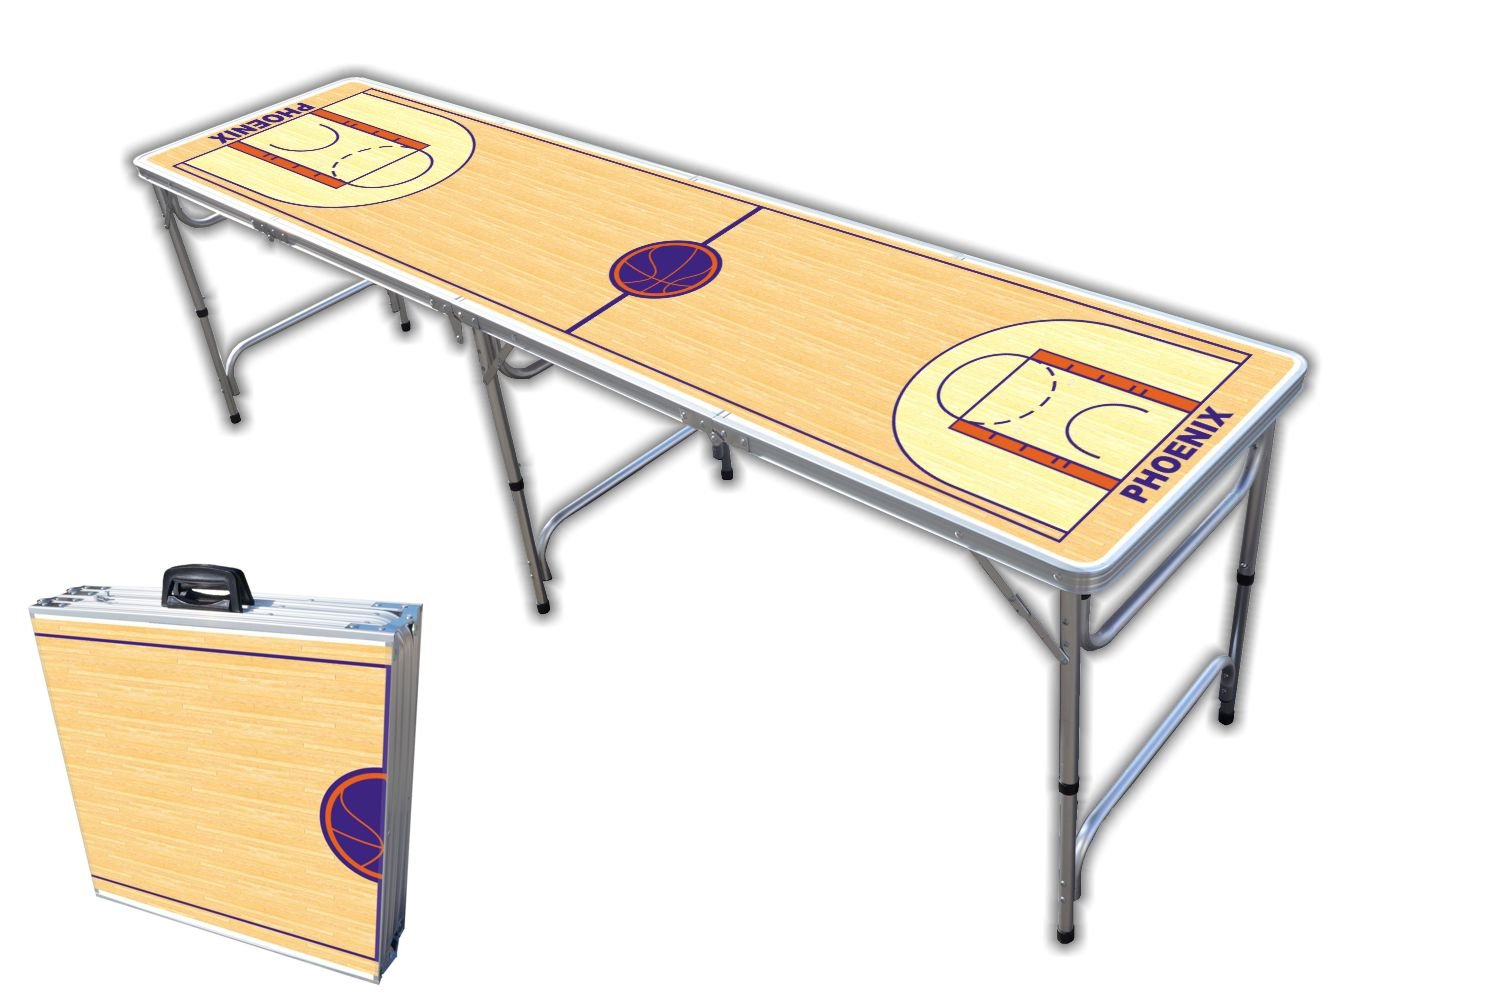 8-Foot Professional Beer Pong Table - Phoenix Basketball Court Graphic by PartyPongTables.com